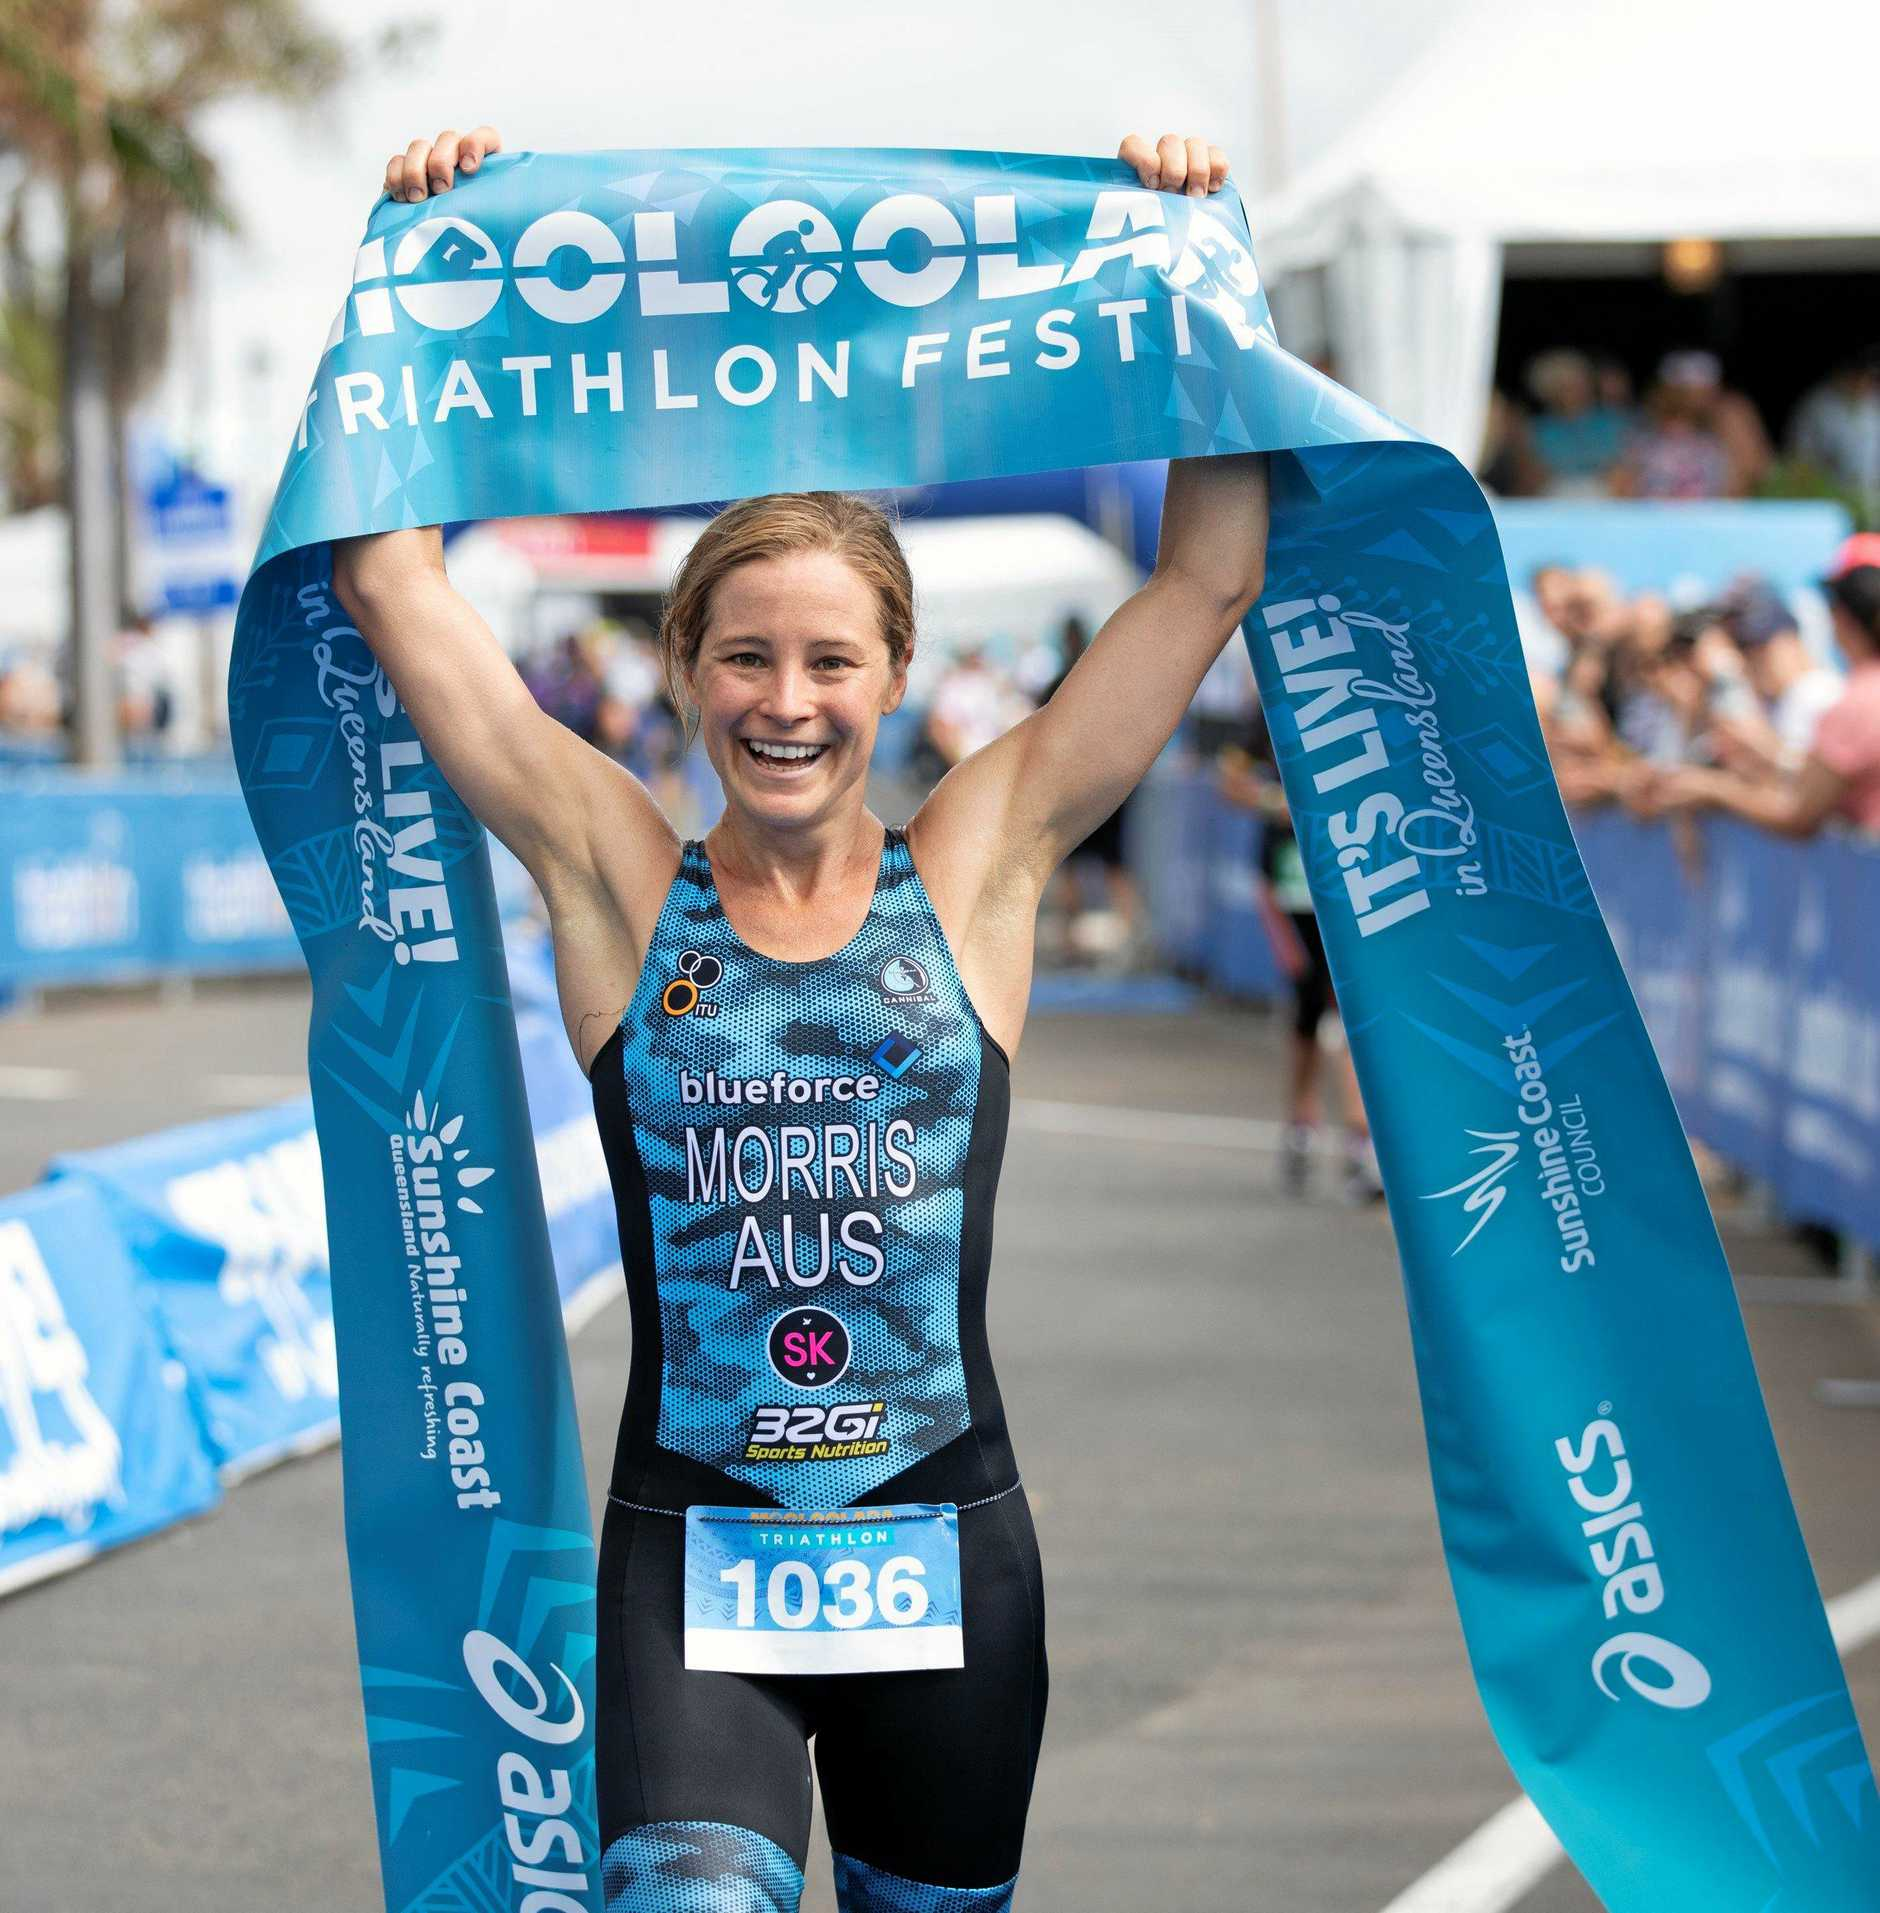 Kerry Morris won the Mooloolaba Triathlon for the second year in a row on Sunday, March 17